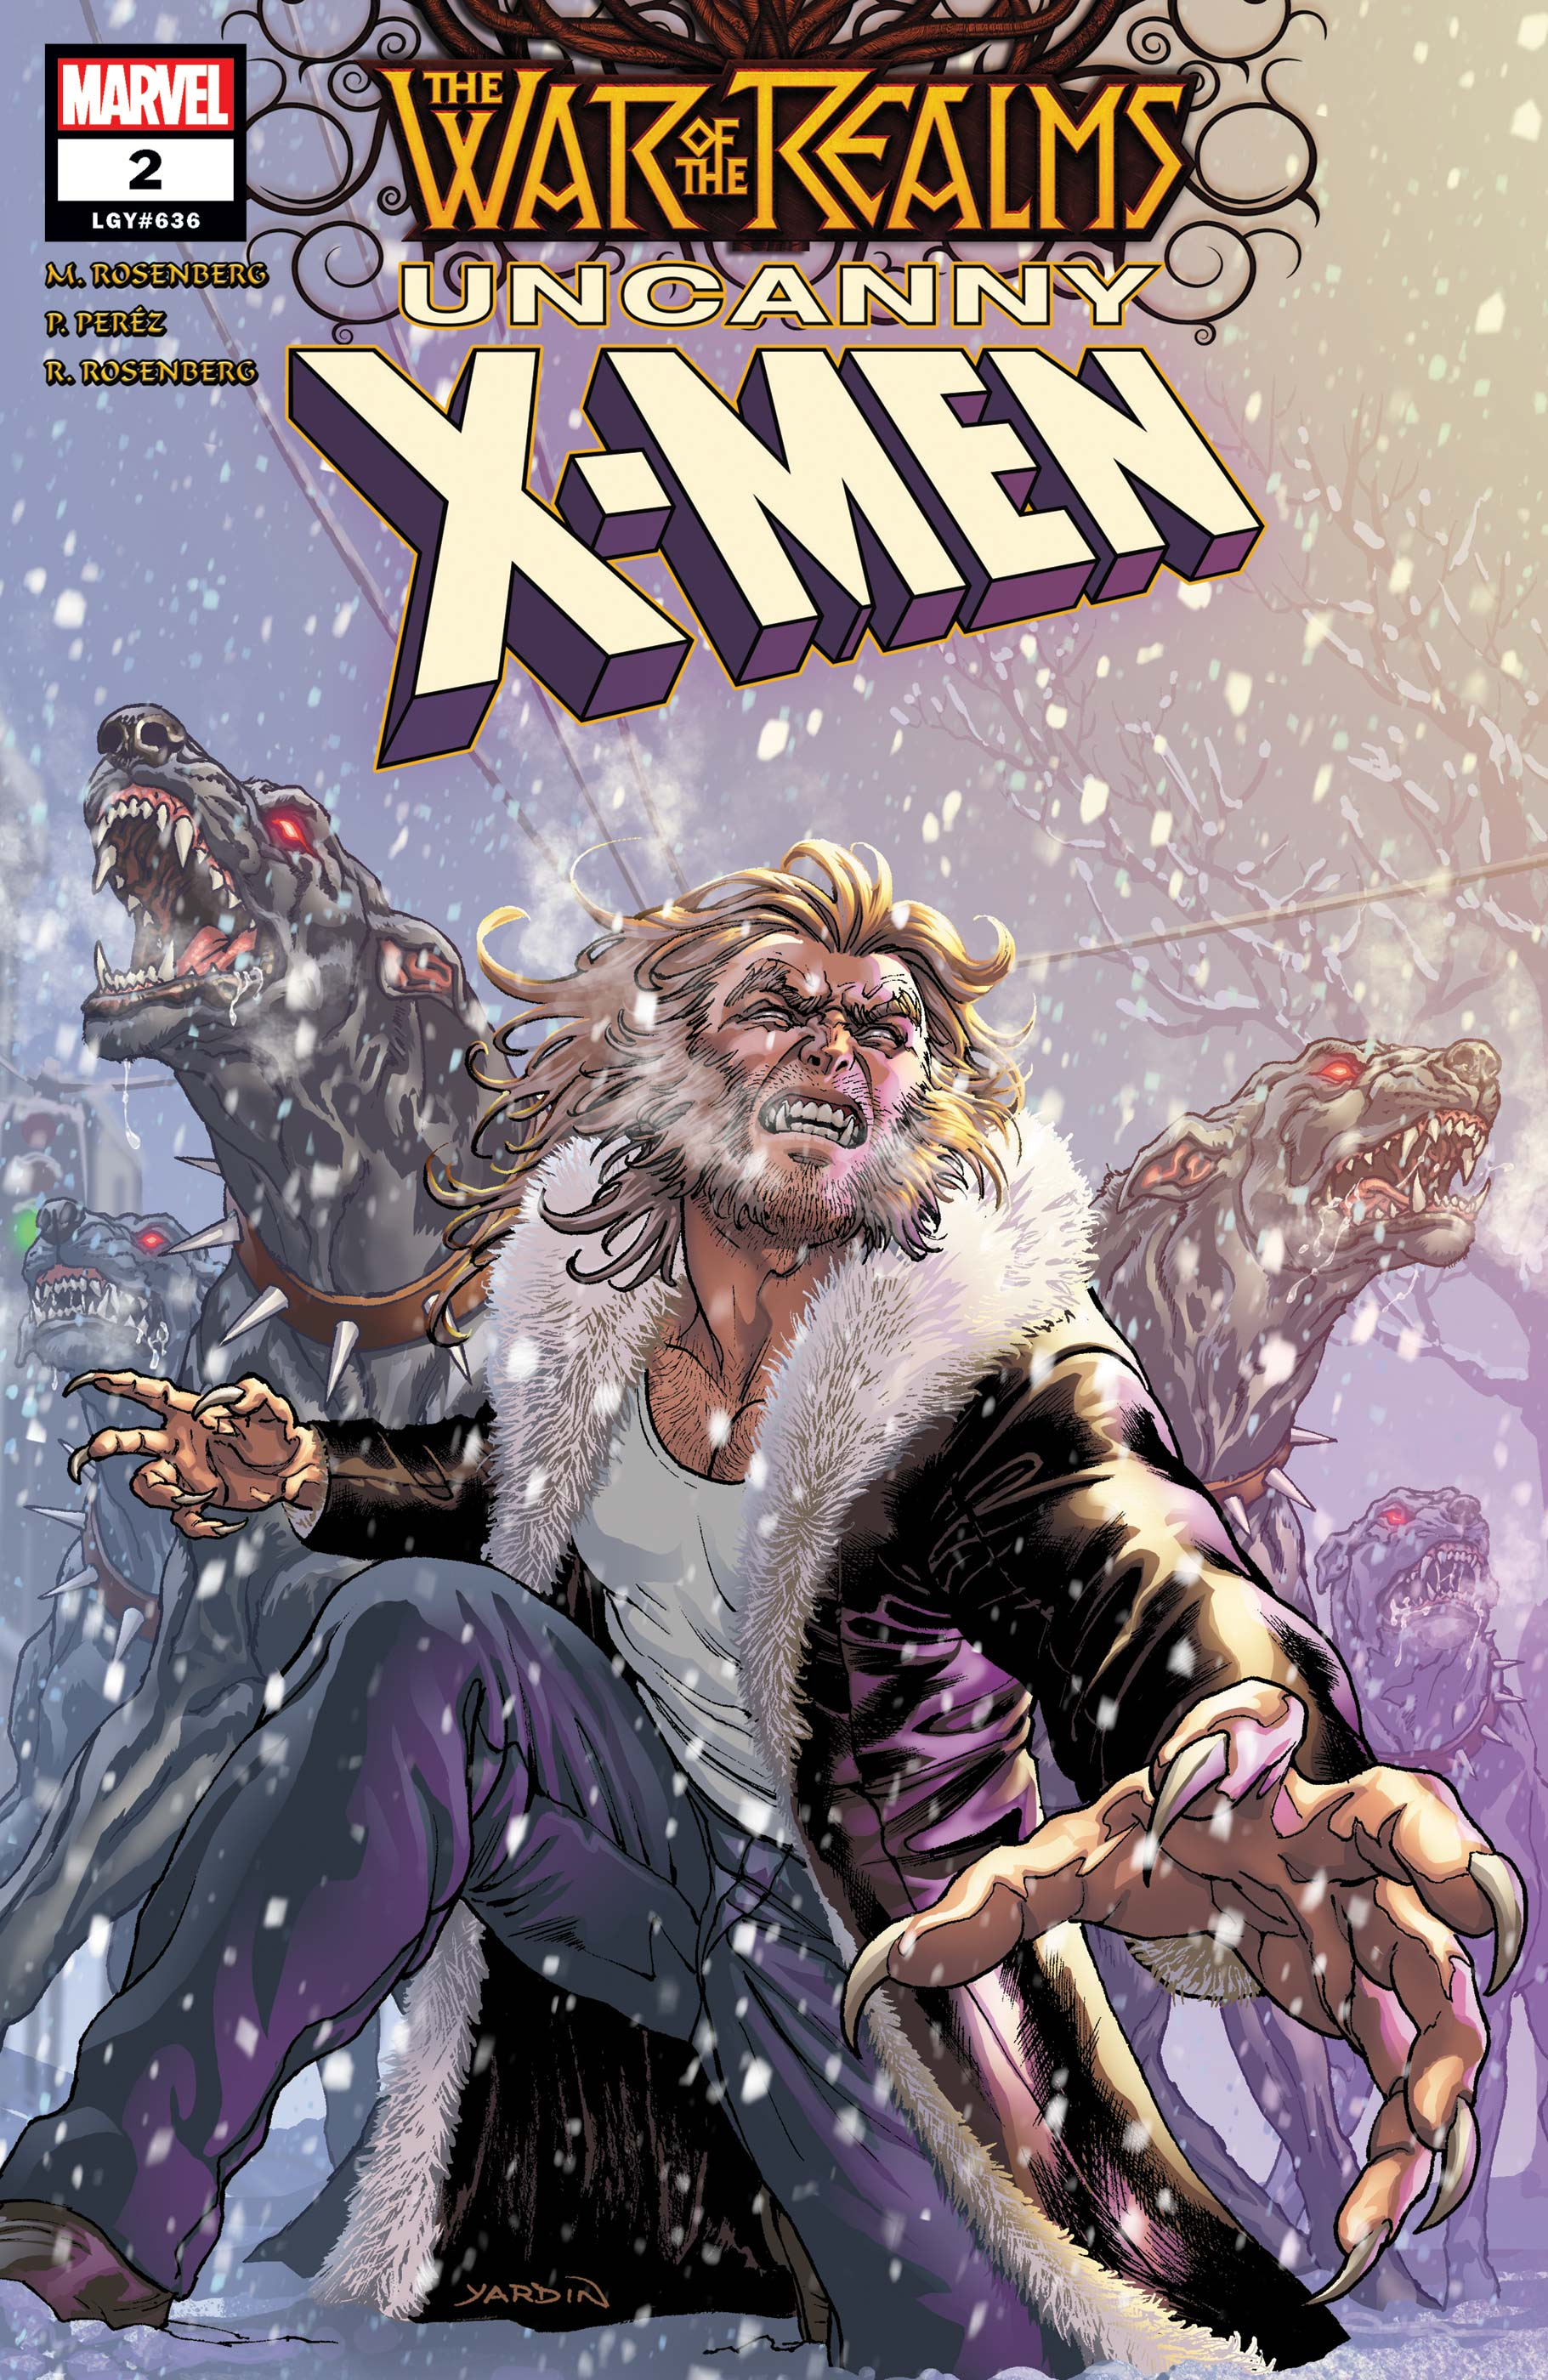 War of the Realms: Uncanny X-Men (2019) #2